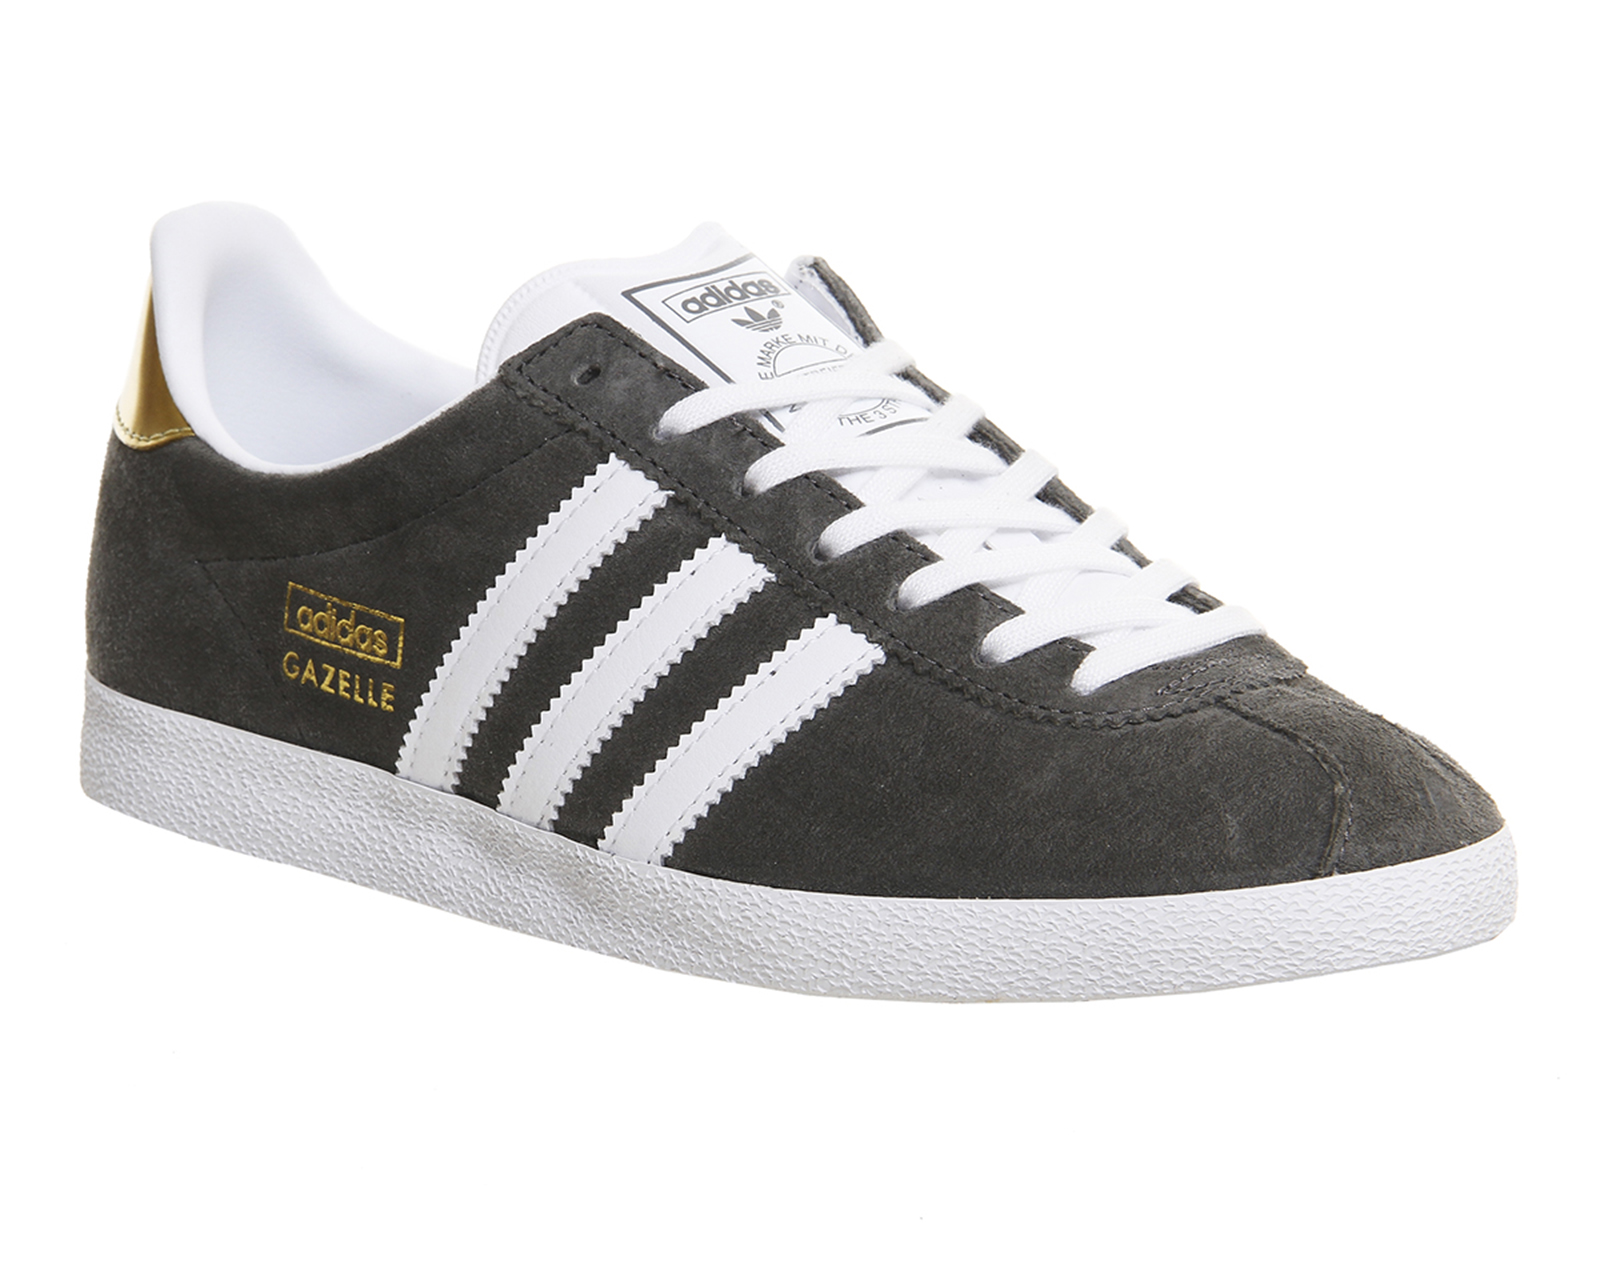 41ea8e3ef641 Buy womens adidas gazelle trainers   OFF73% Discounted